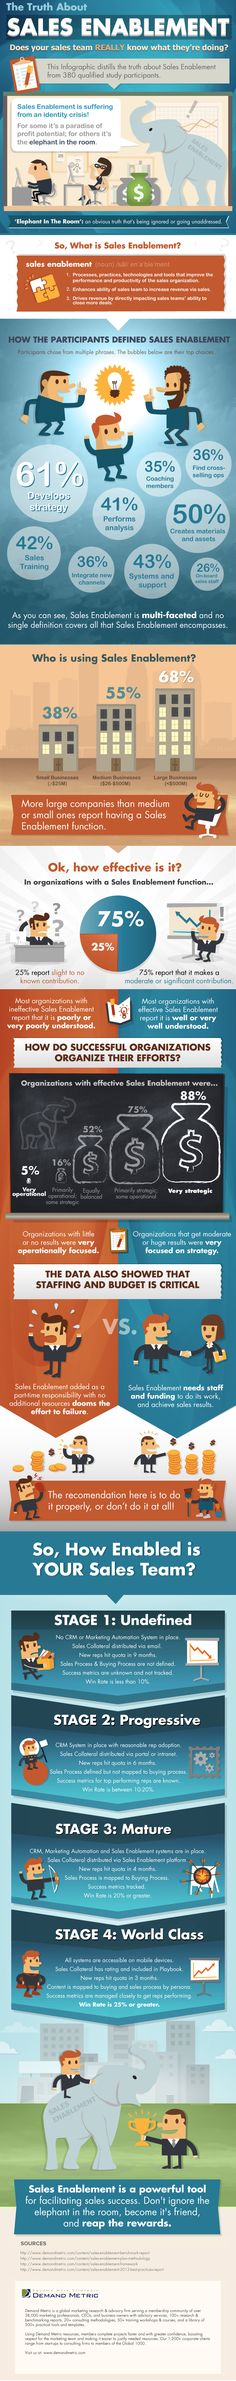 The Truth About Sales Enablement Infographic #salesenablement